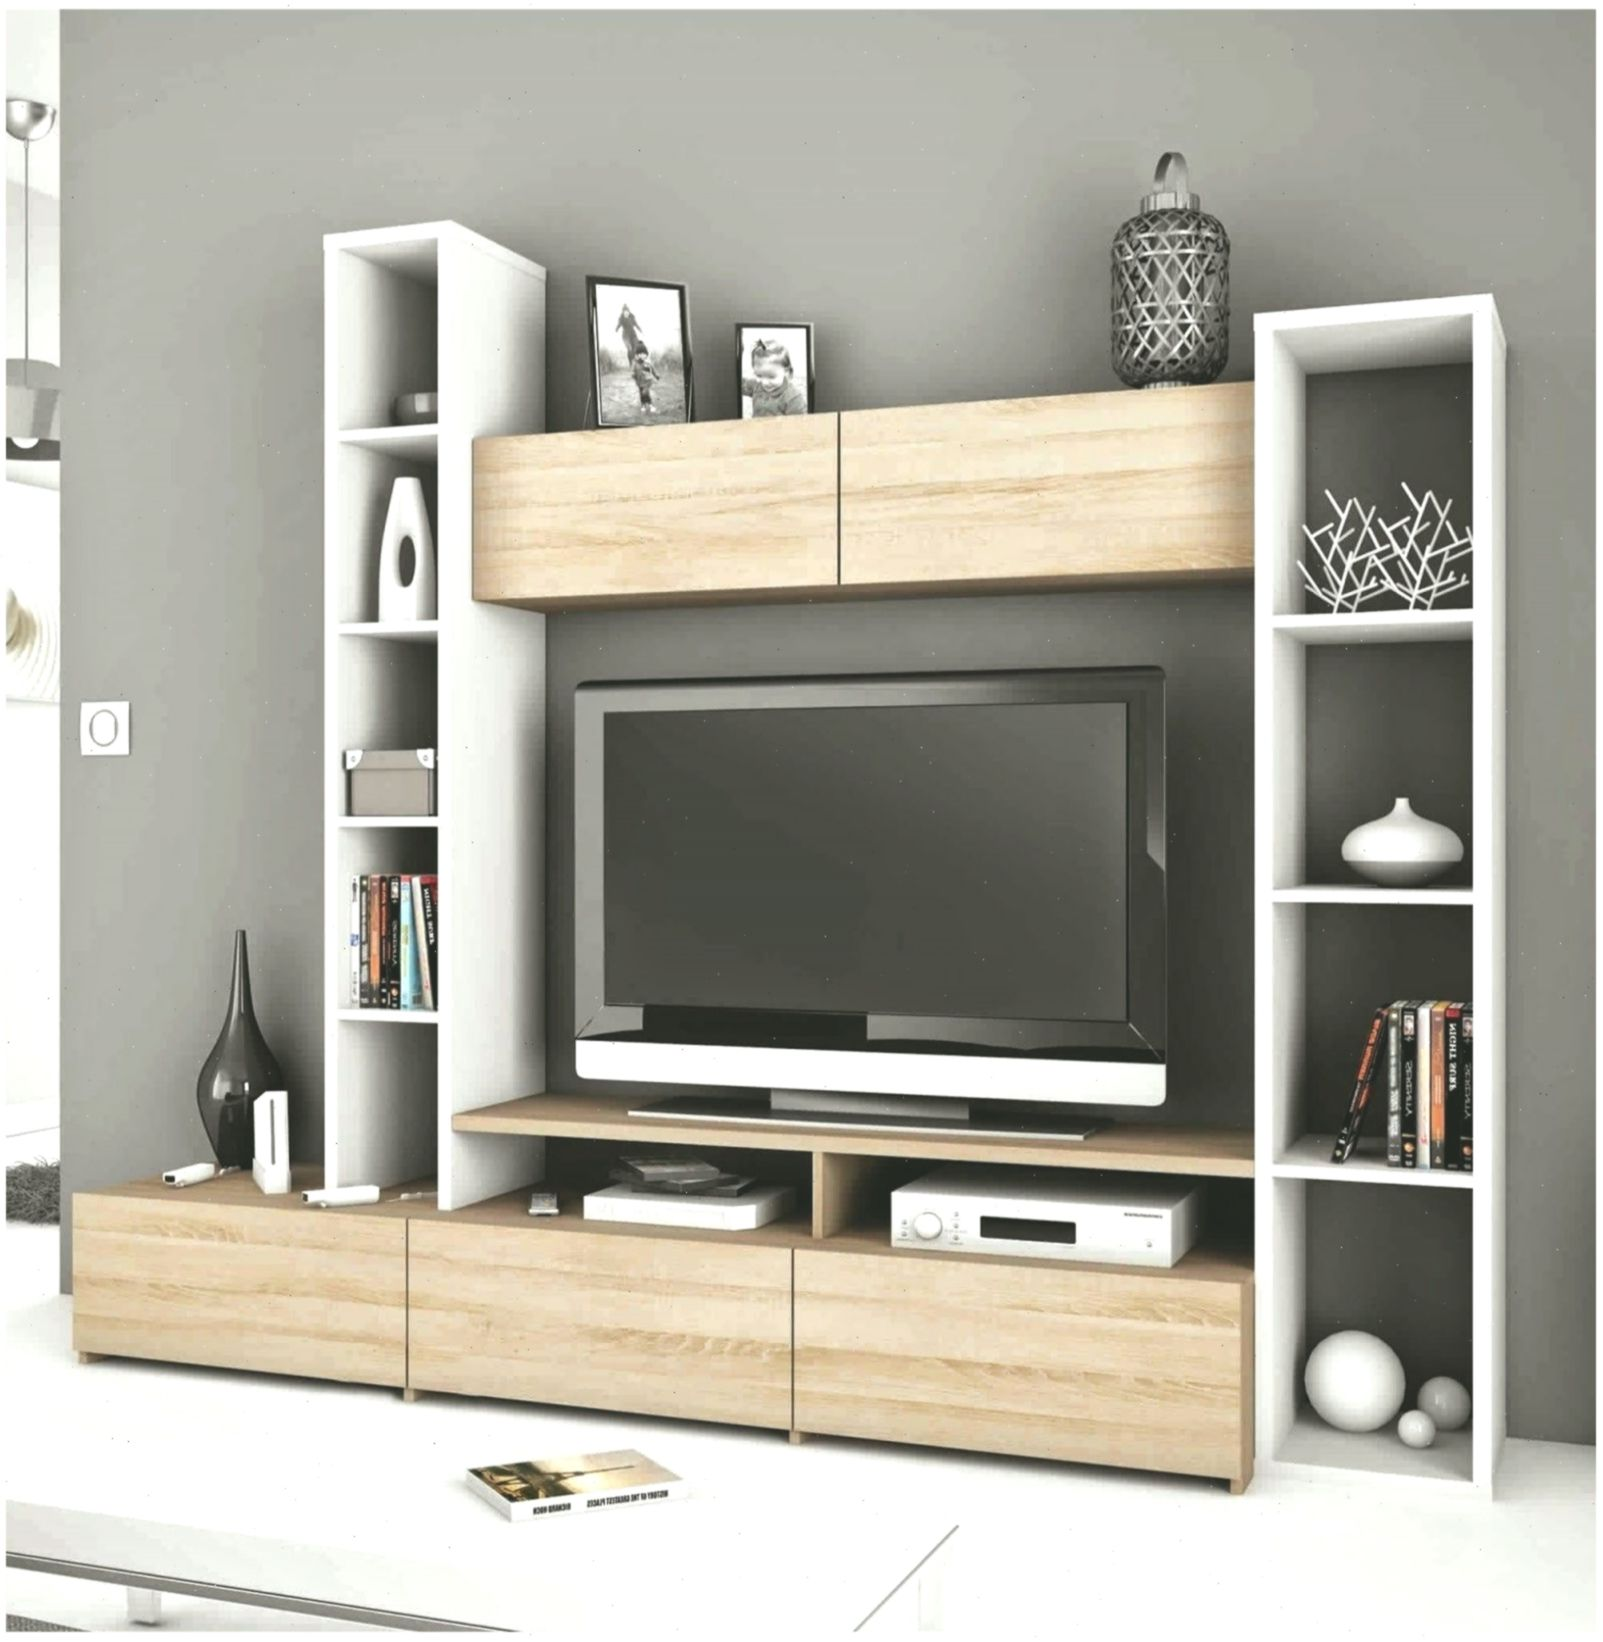 28 Luxe Meuble Tv Roulettes Plateau Tournant Suggestions Meuble Tv Baroque Br Tv Cabinet Design Cool Furniture